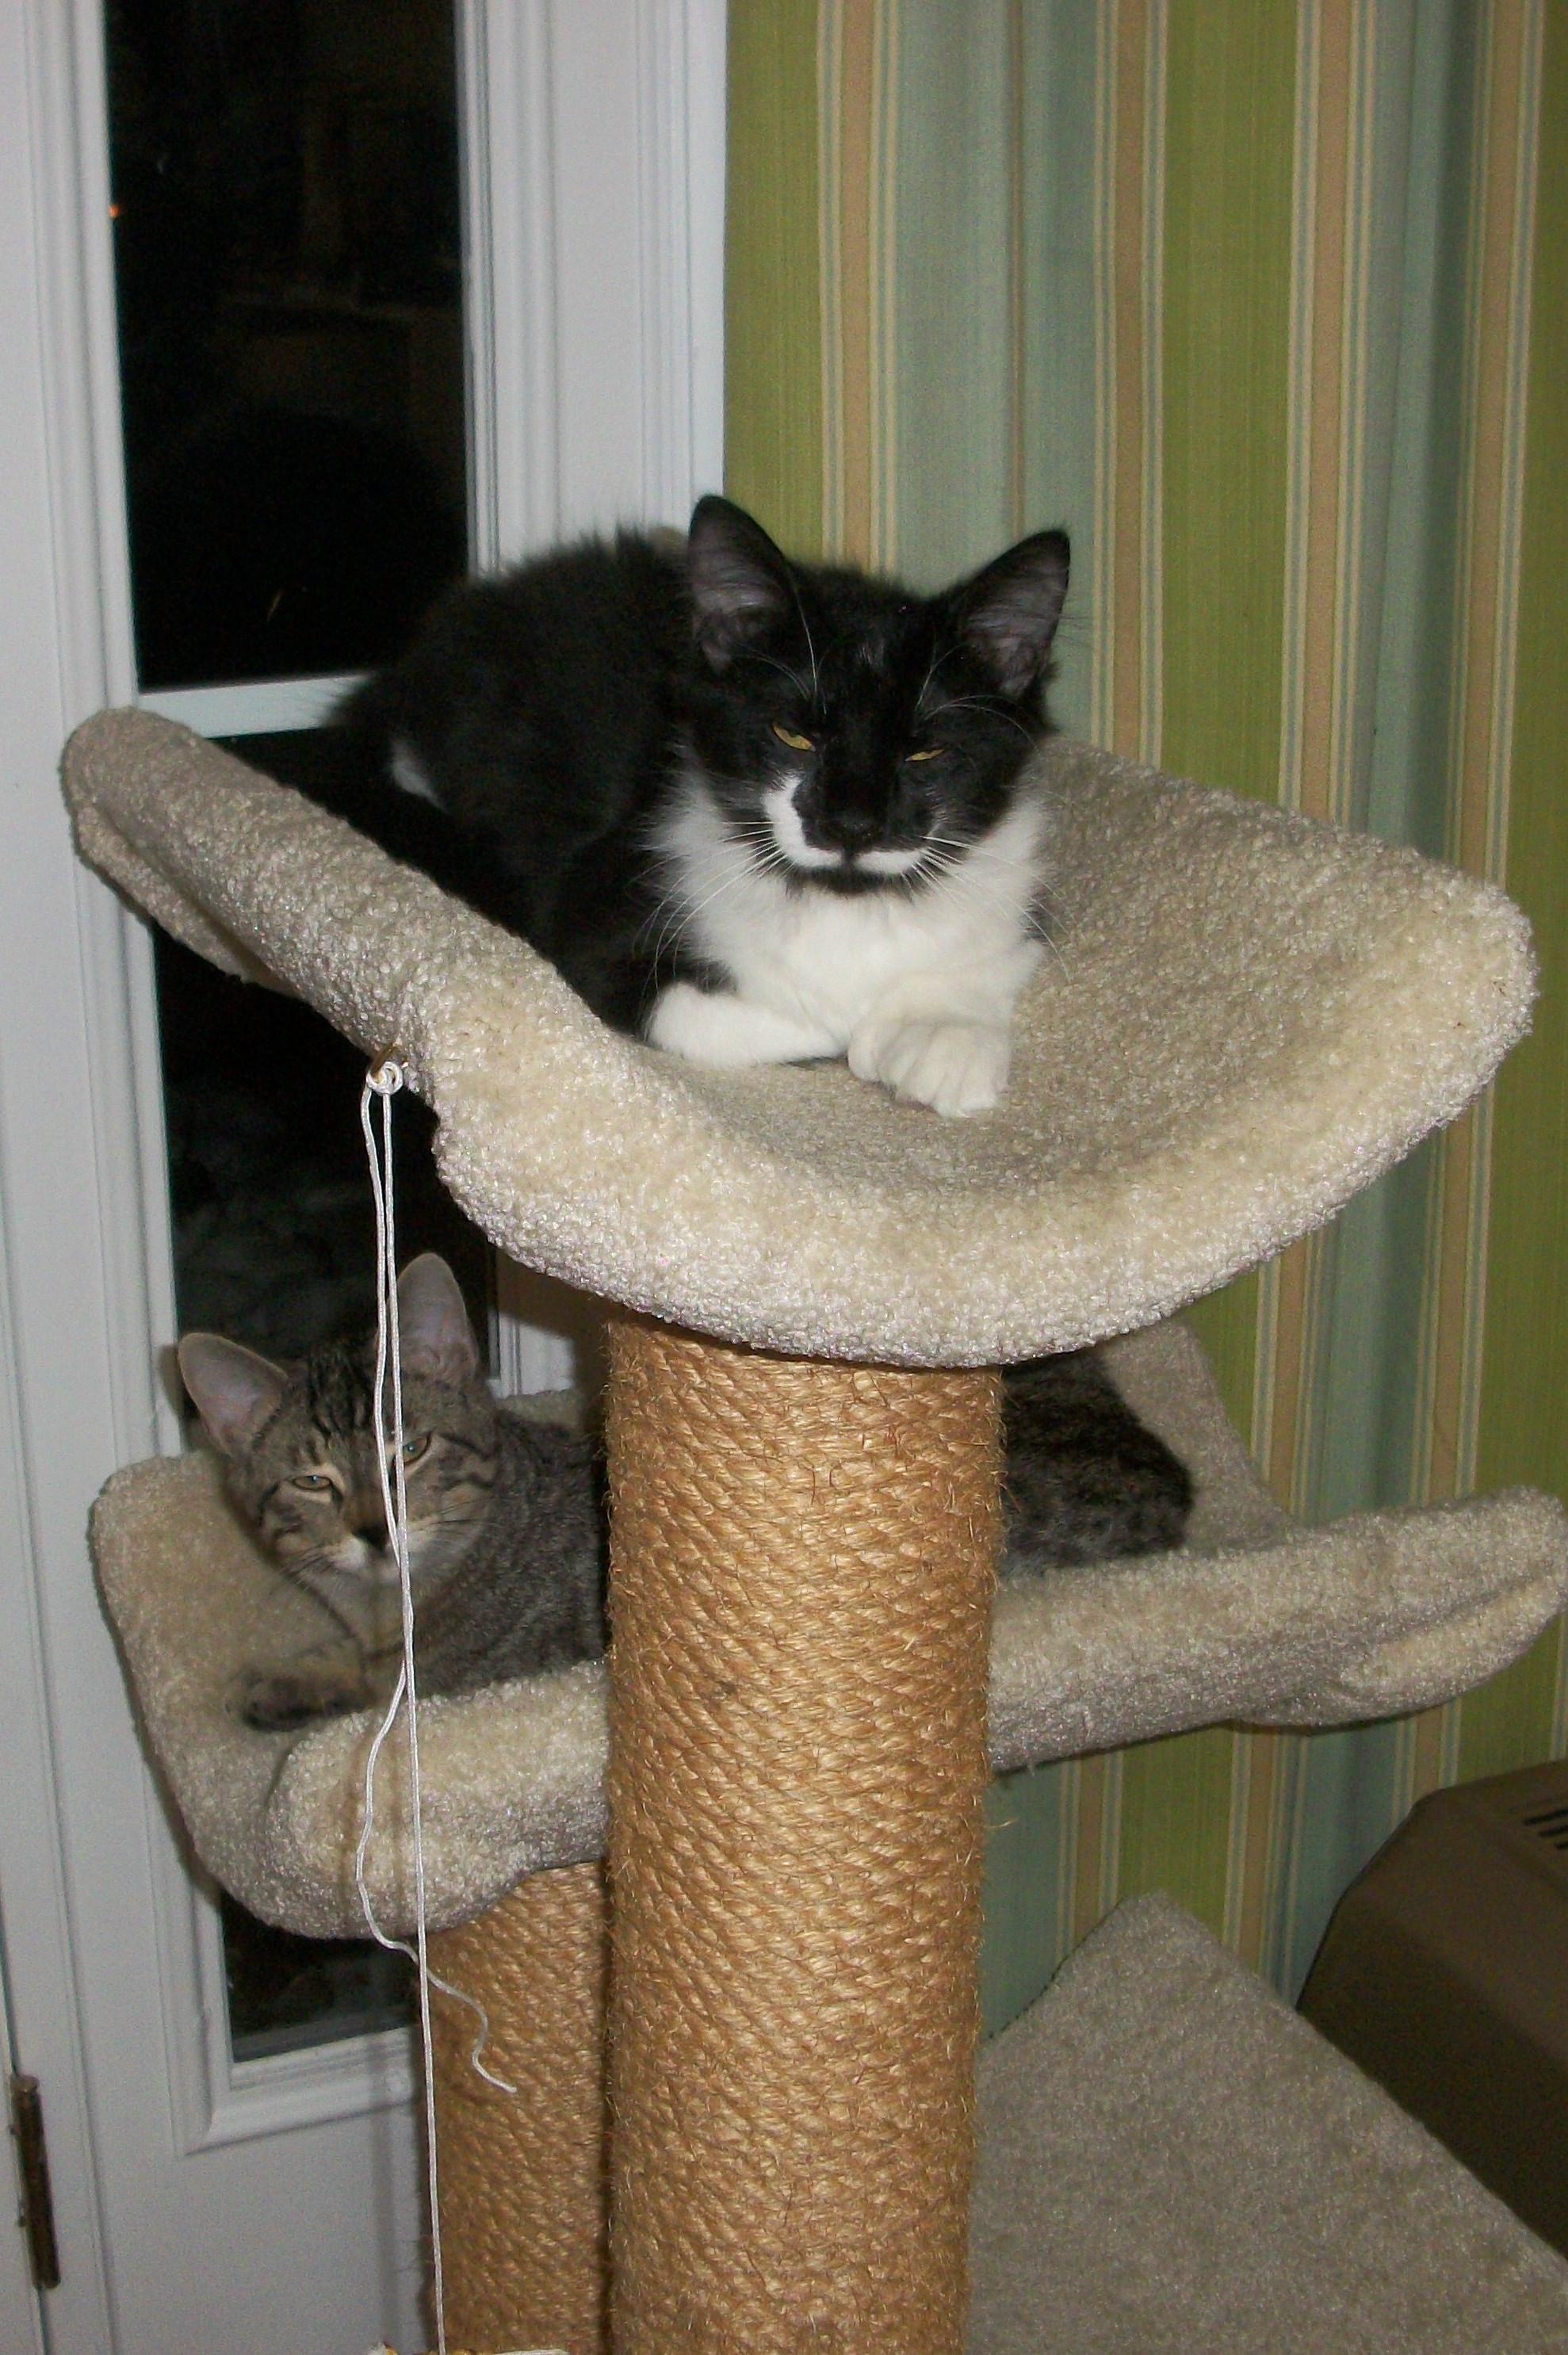 Linus and Charlie on cat tree